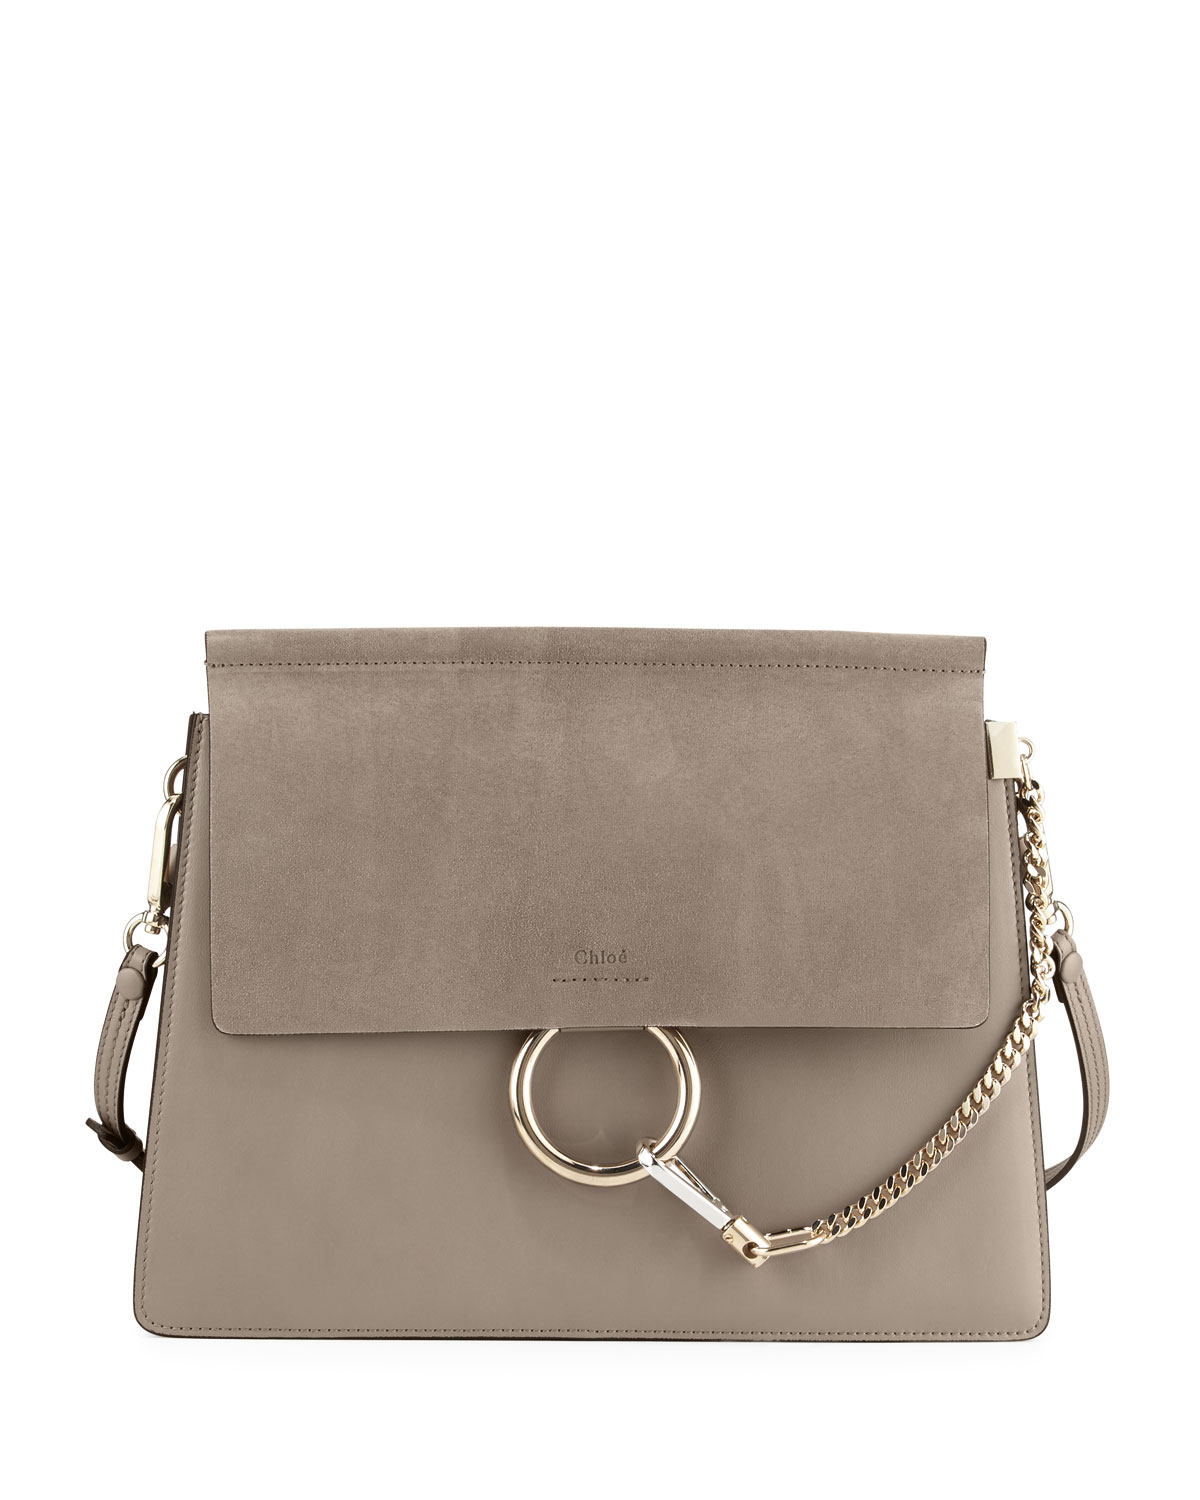 931df31b573ff Chloe Faye Medium Flap Shoulder Bag | Neiman Marcus